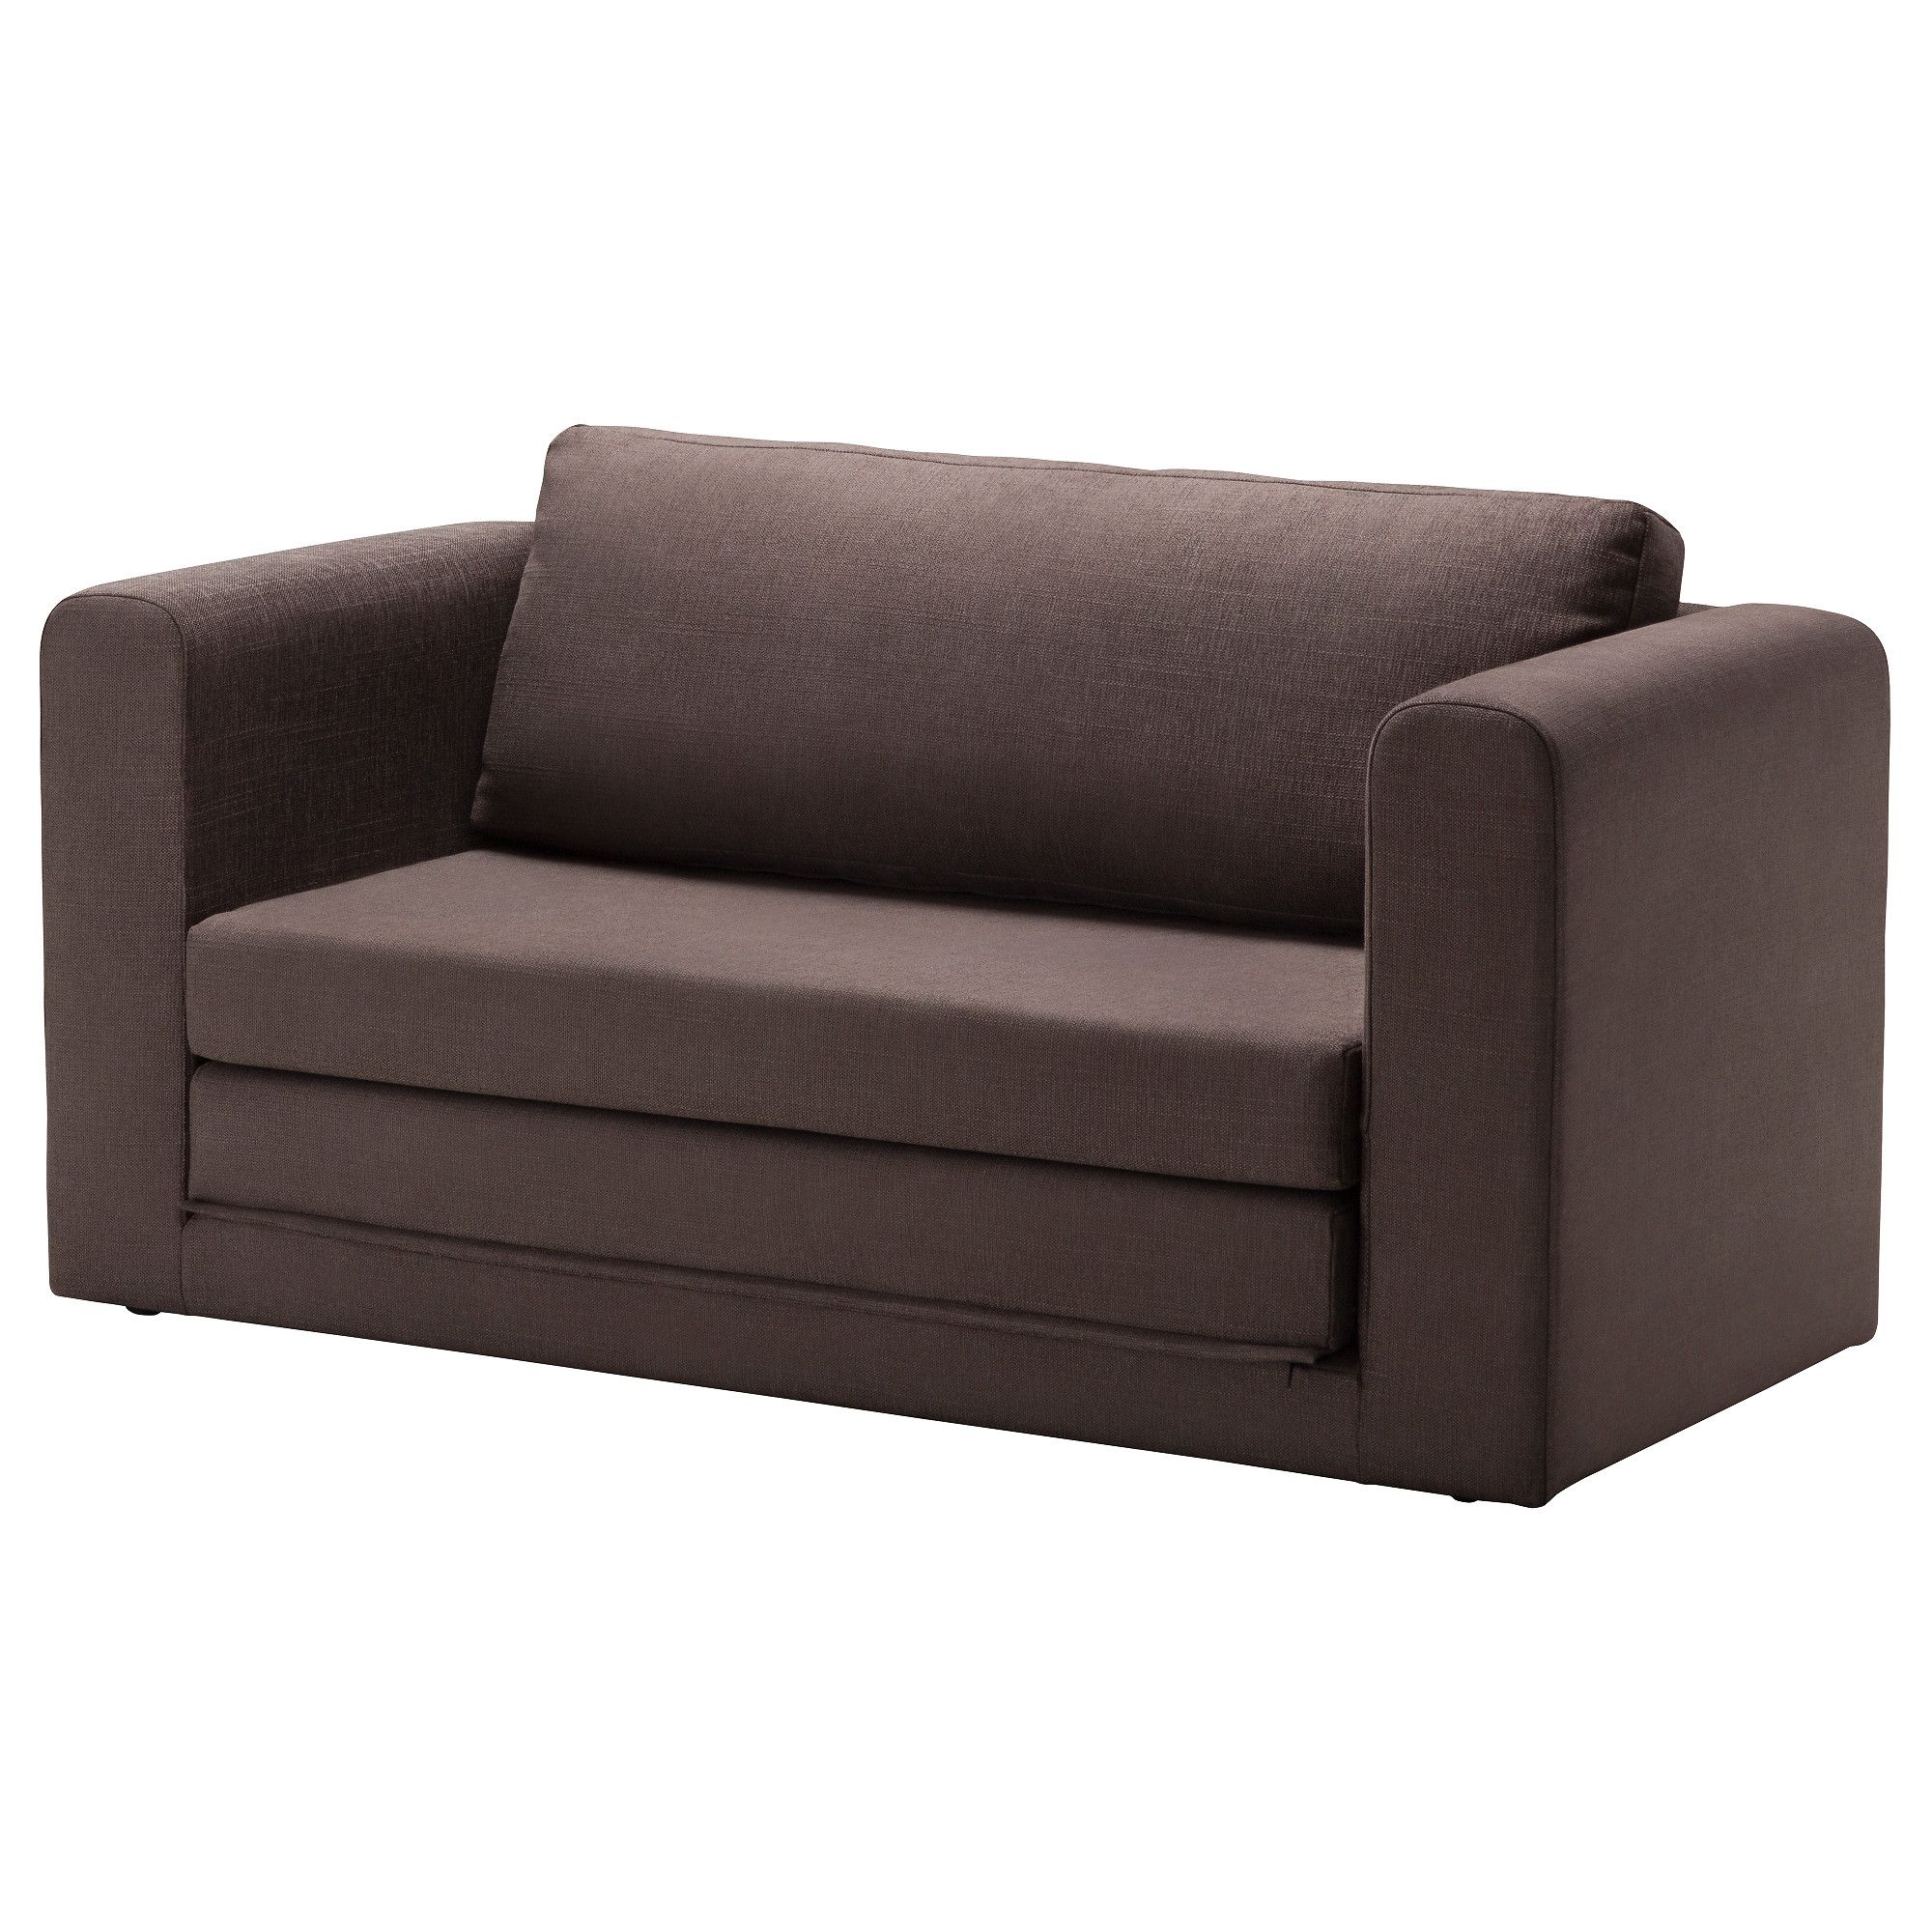 Corner Sofa Bed With